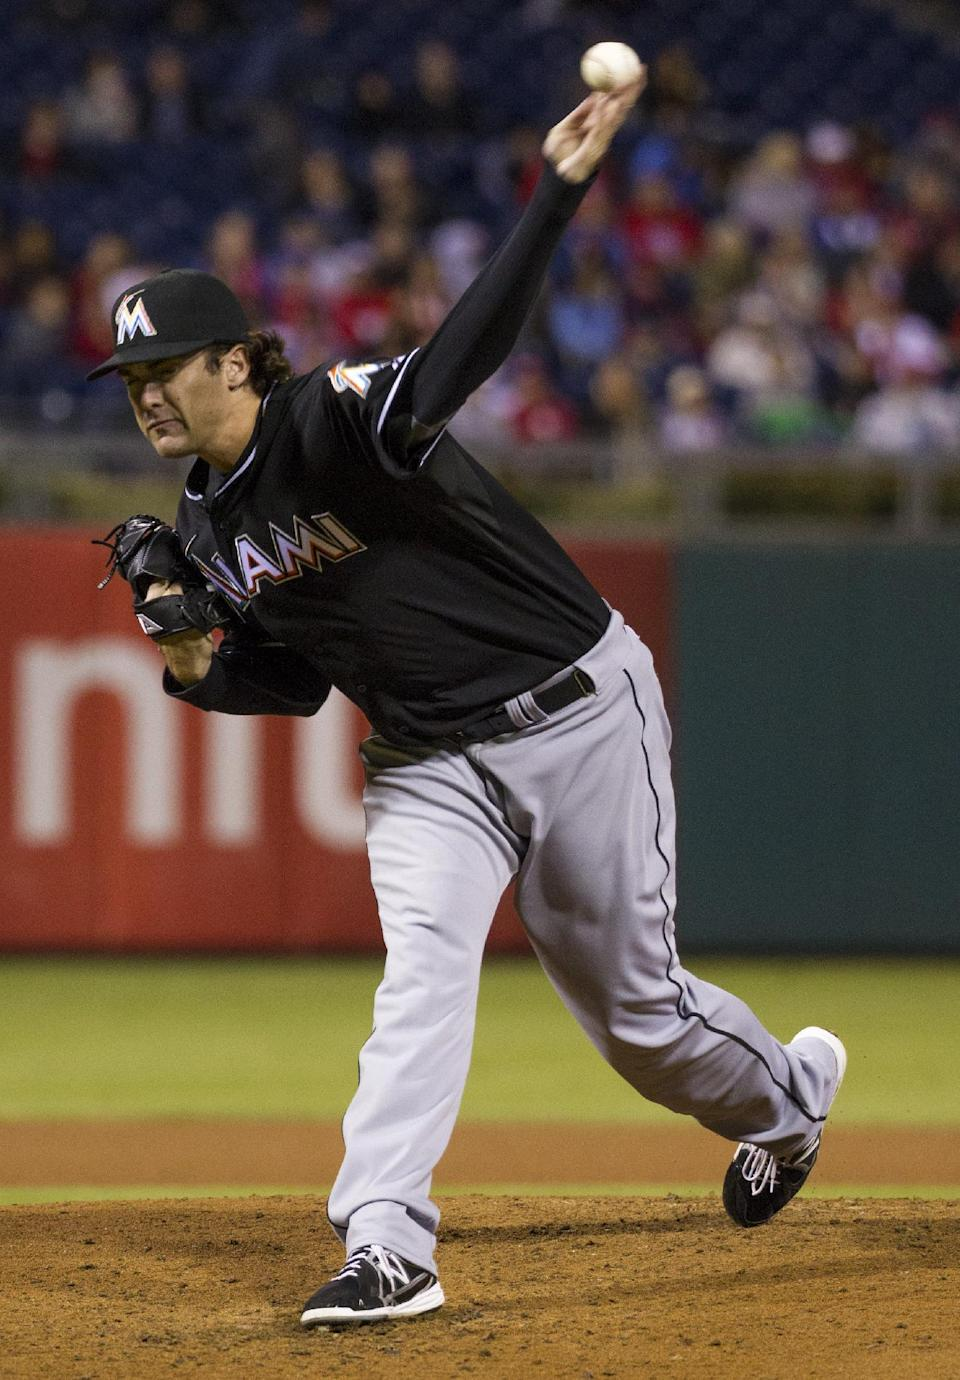 Pierre passes DiMaggio, Marlins lose to Phillies